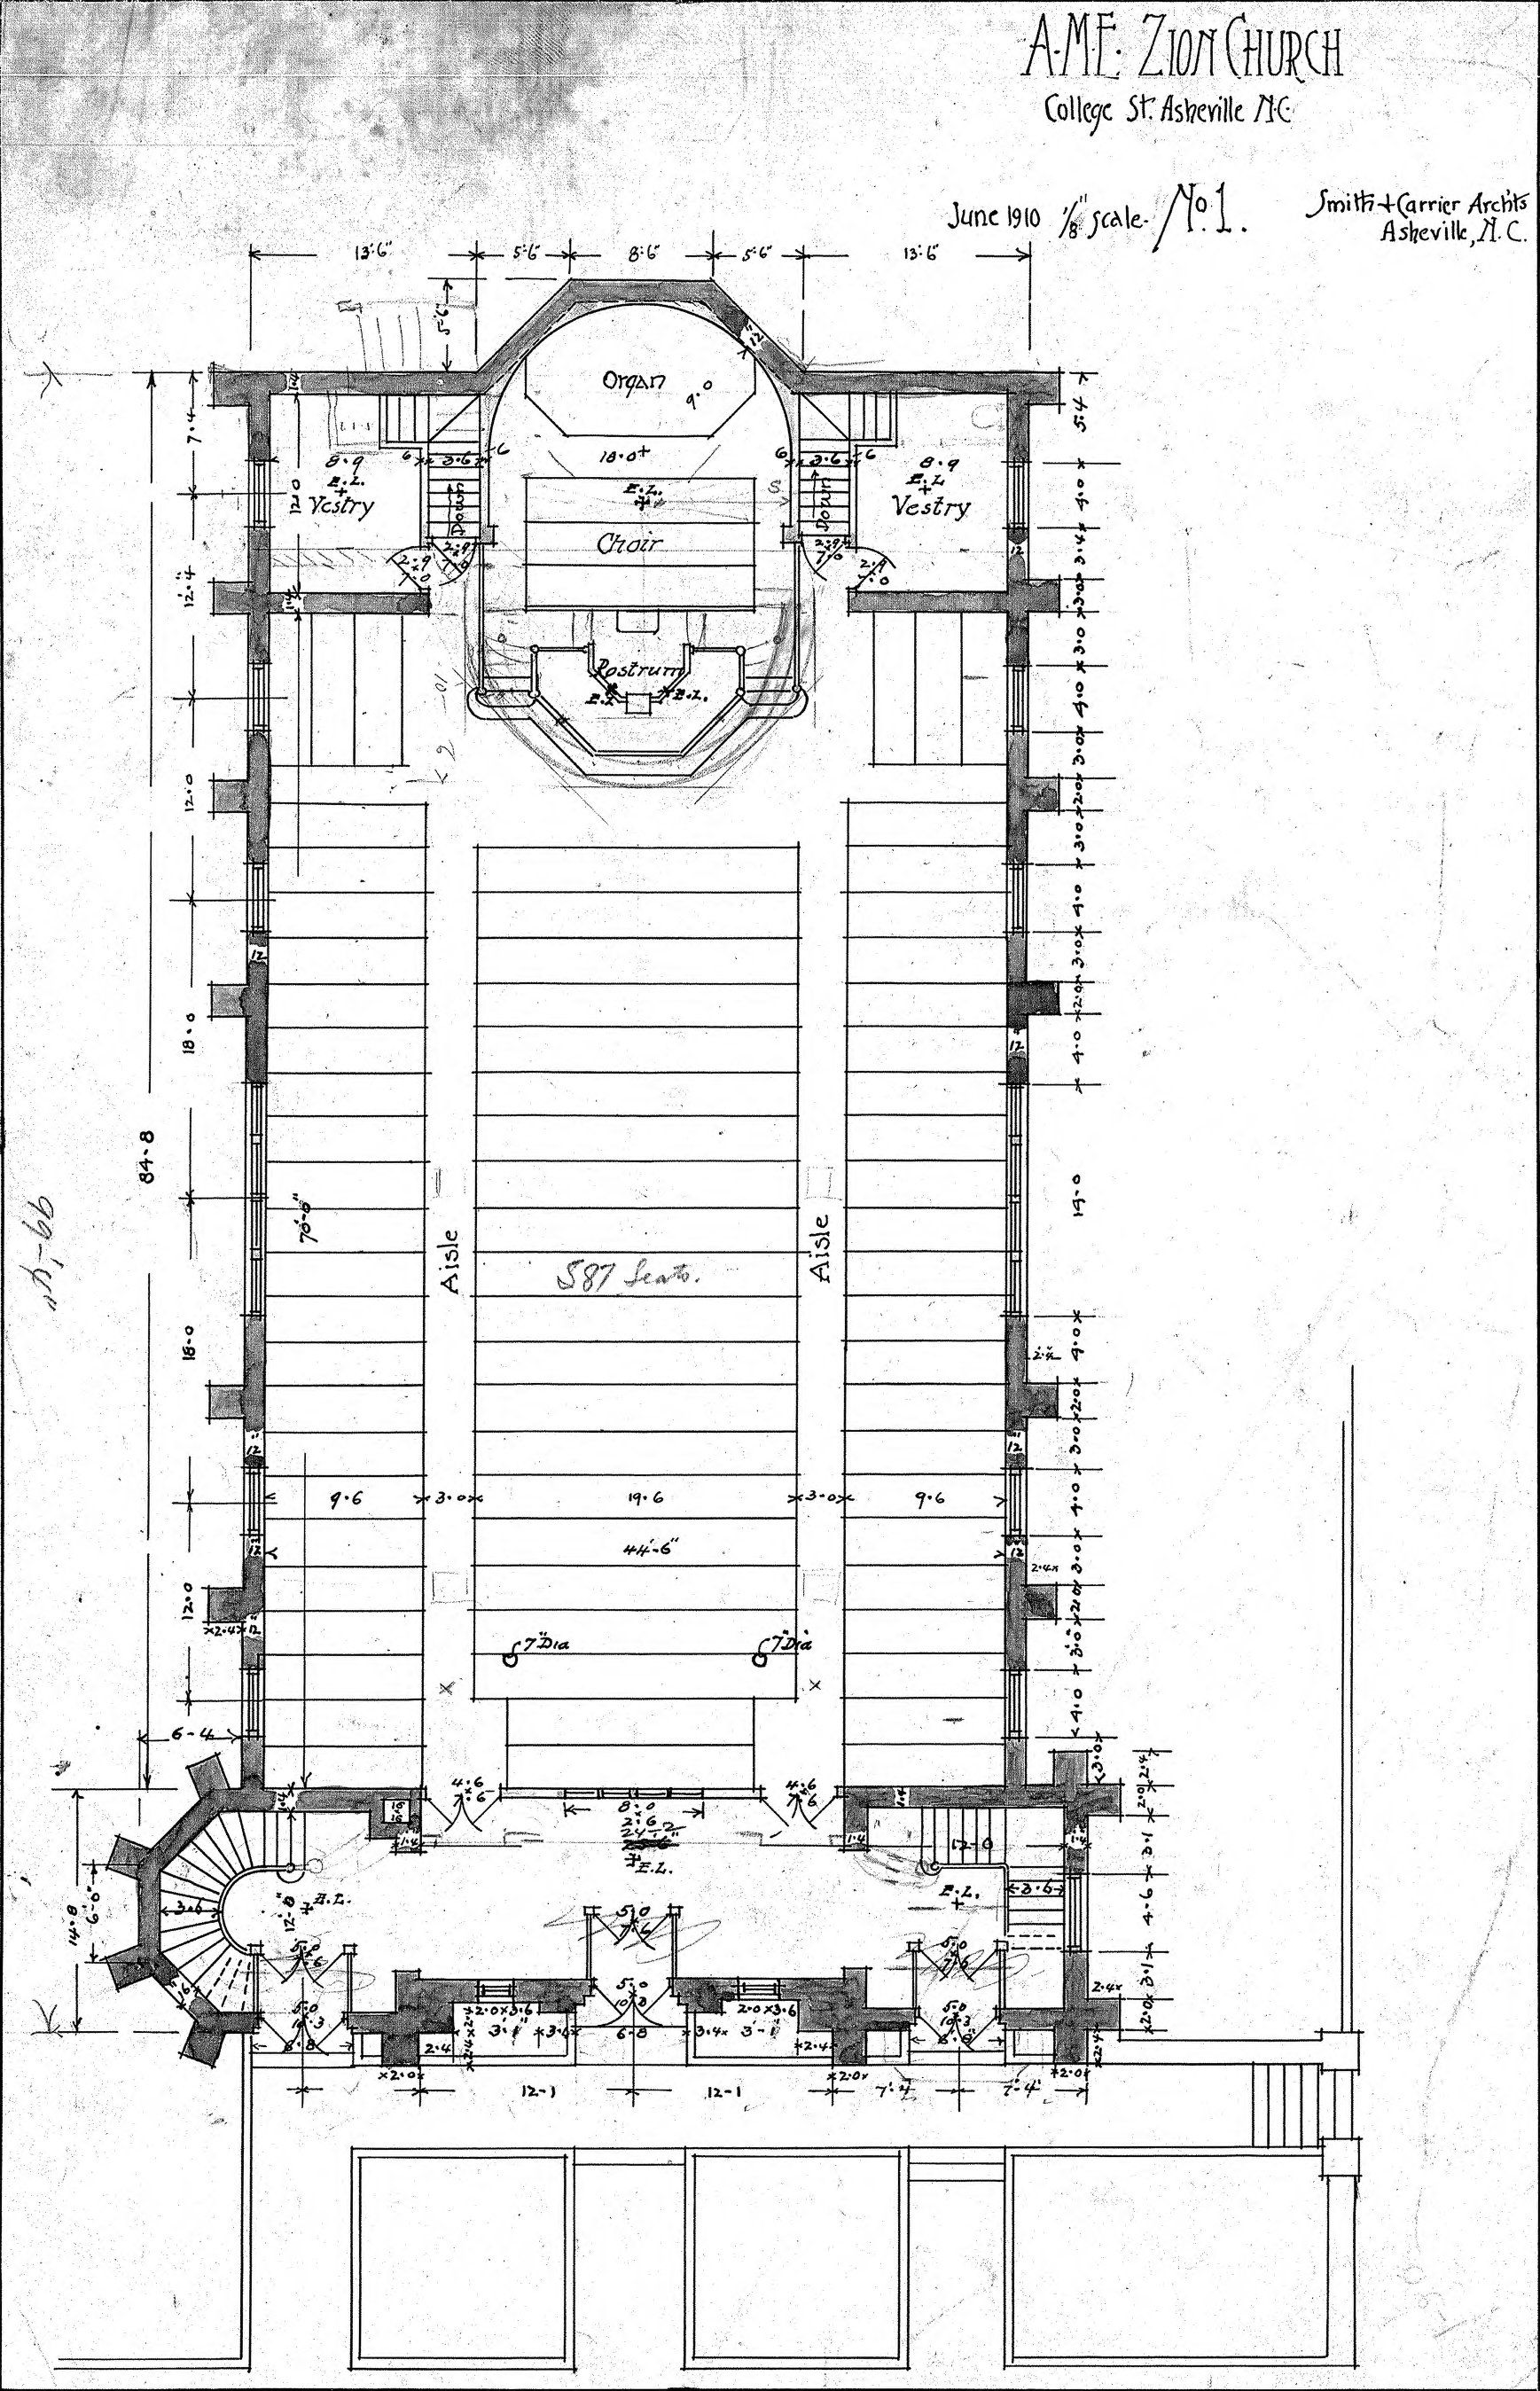 Church floor plans museums architecture pinterest for Church floor plan designs